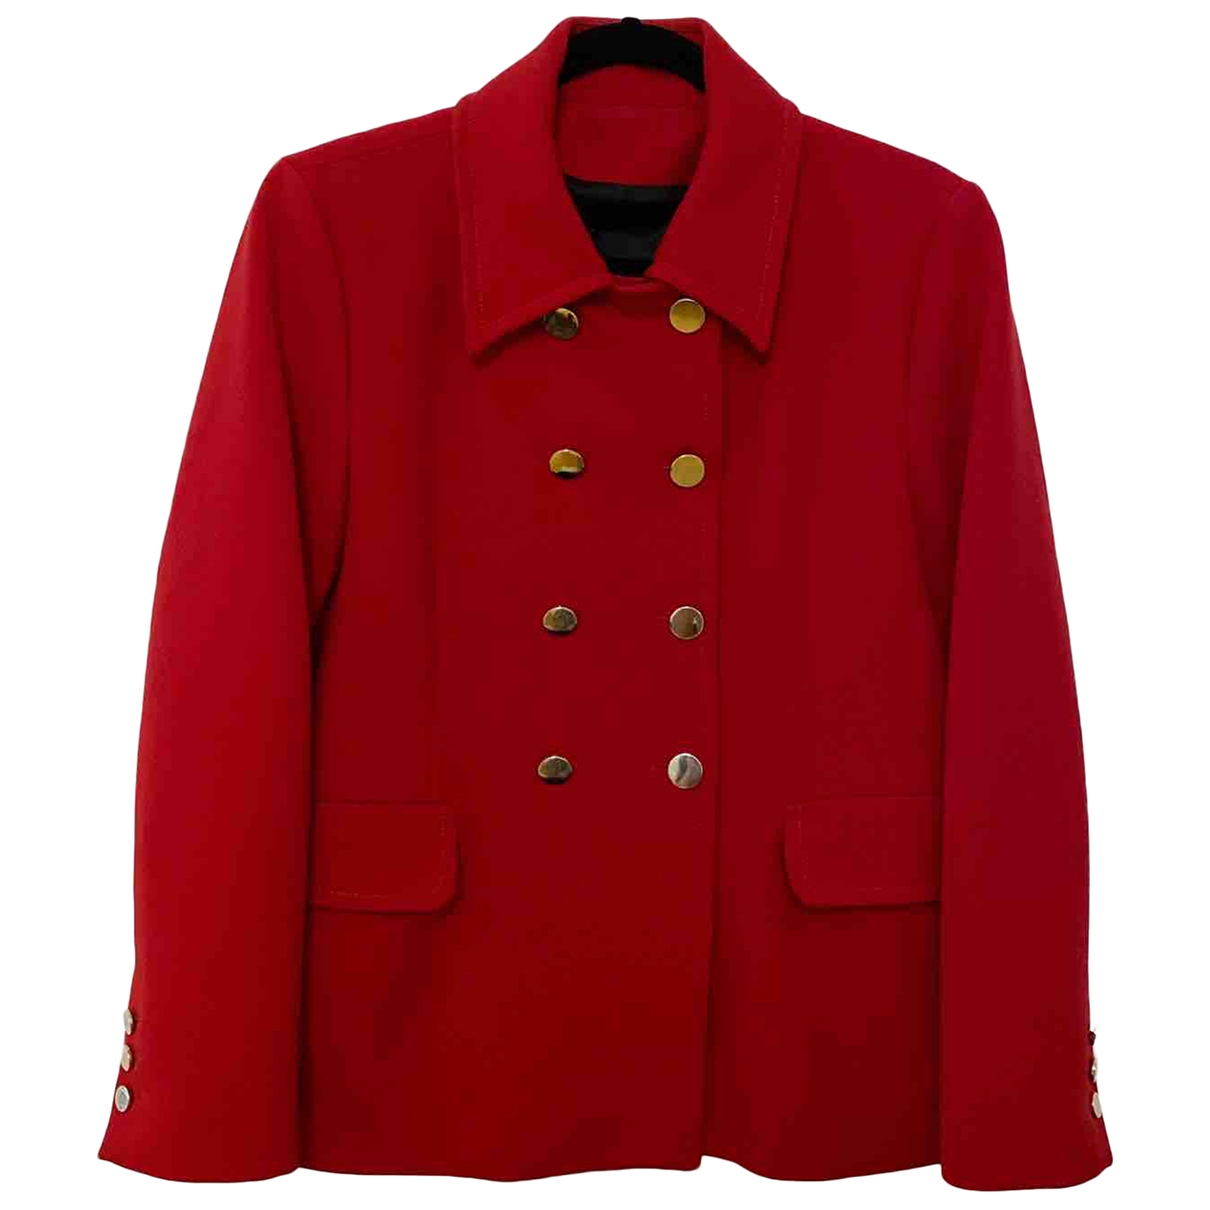 Zara \N Red jacket for Women L International